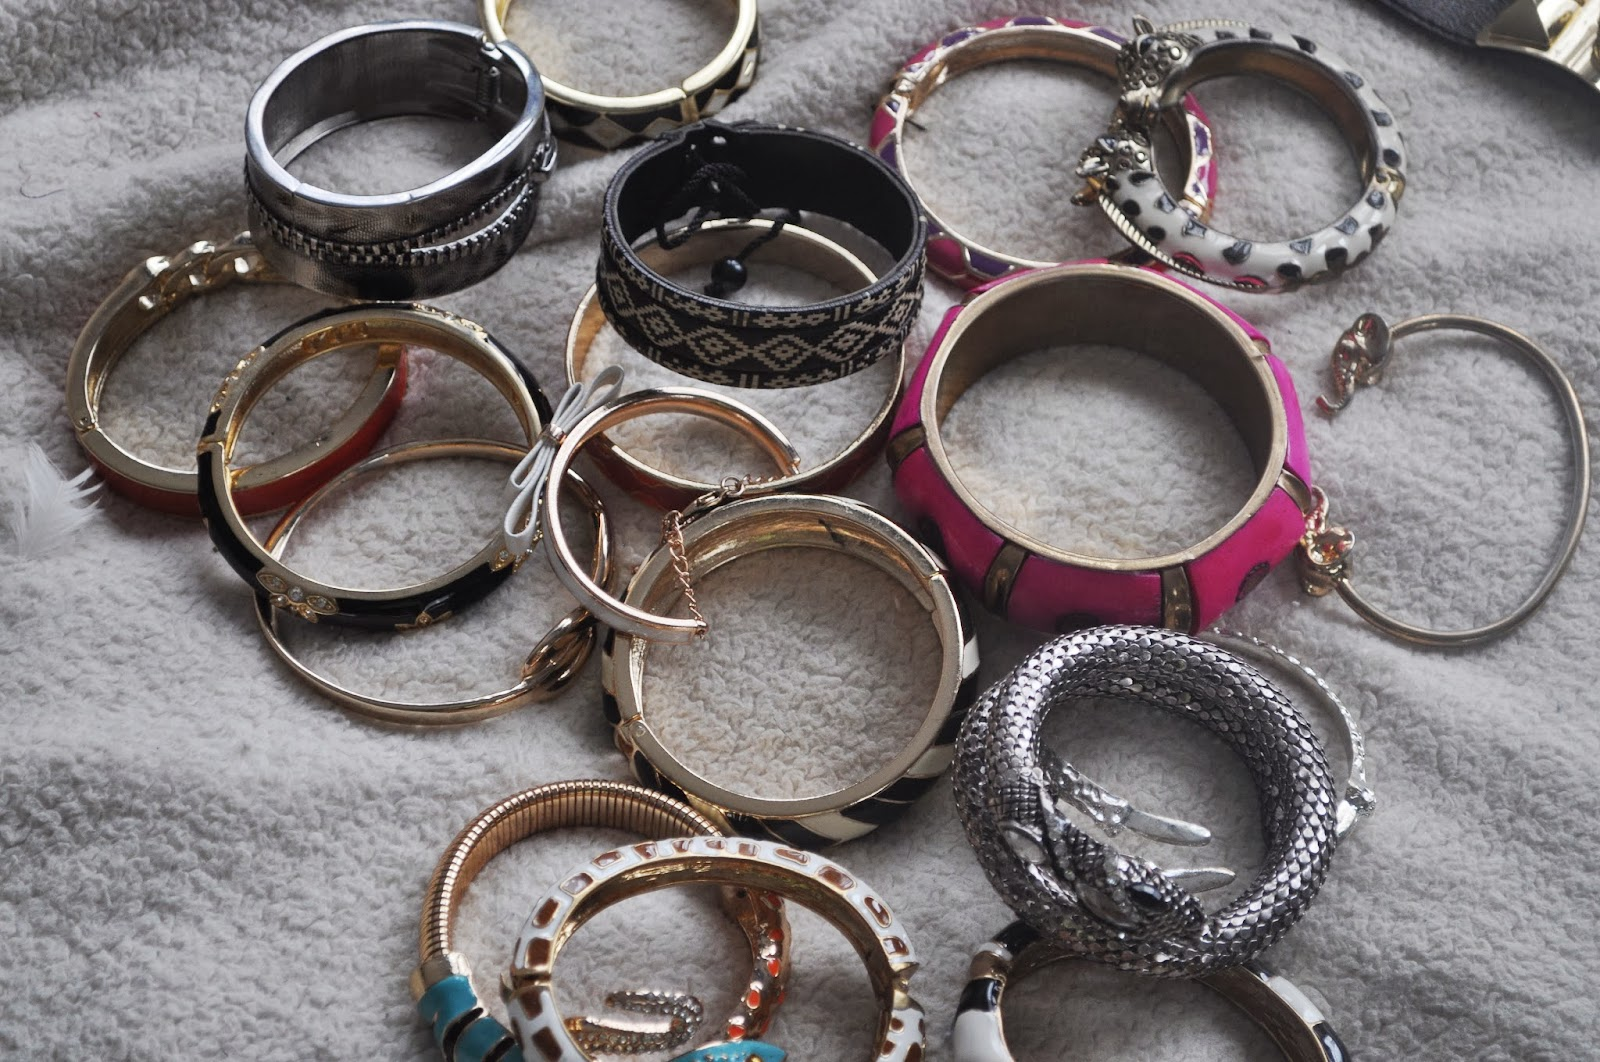 Blog Ust Day 16 Moving Cross Country Jewelry Packing Tips And Tricks All Size Fits One